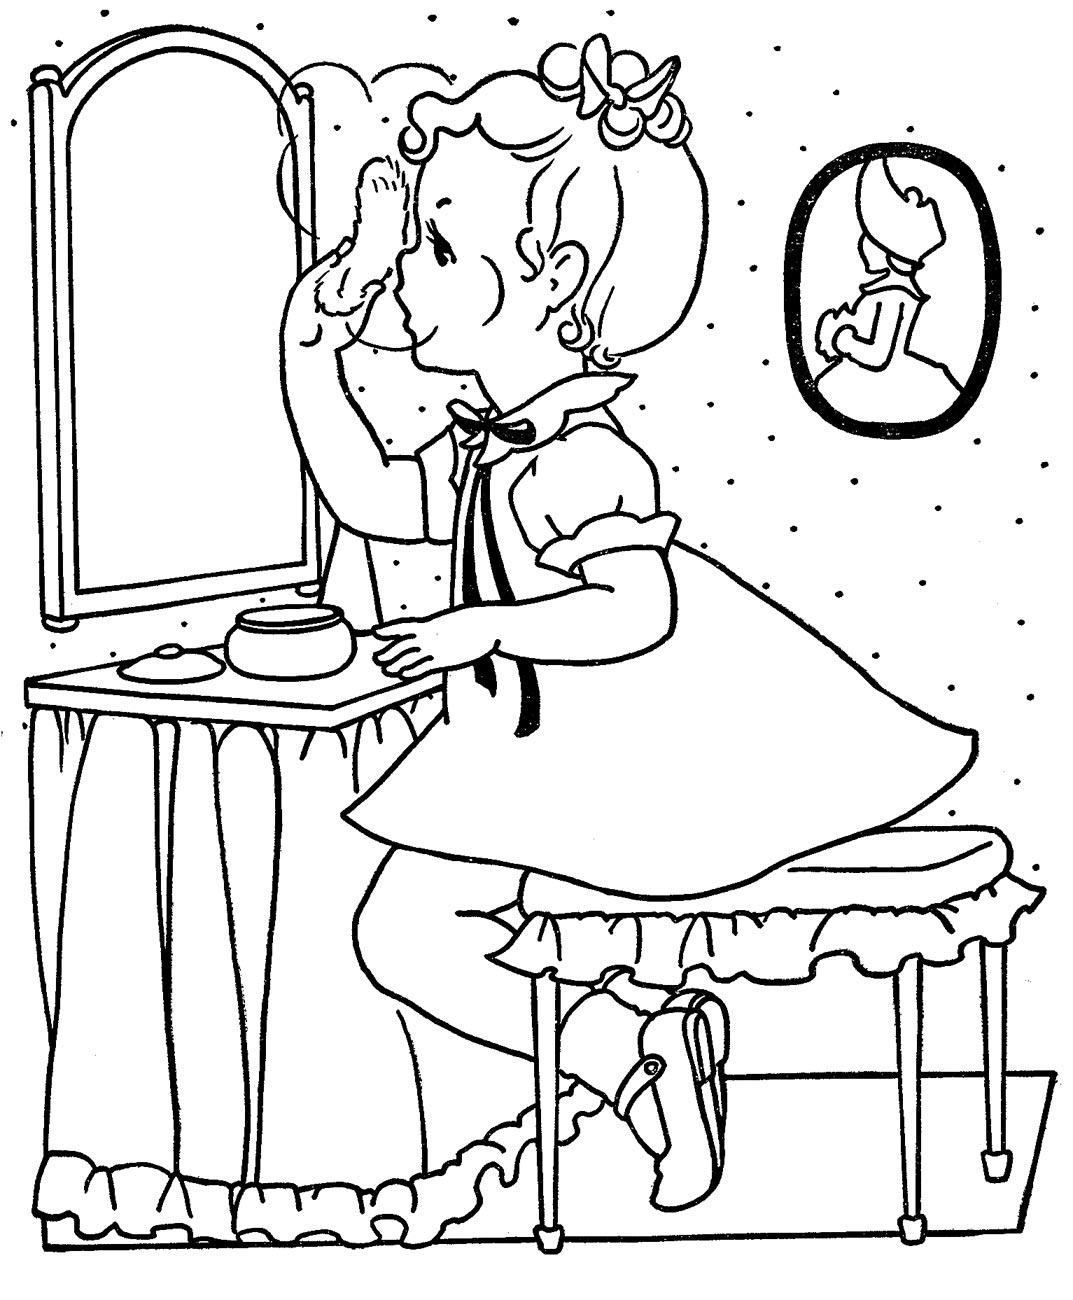 girls favorite coloring pages - photo#23